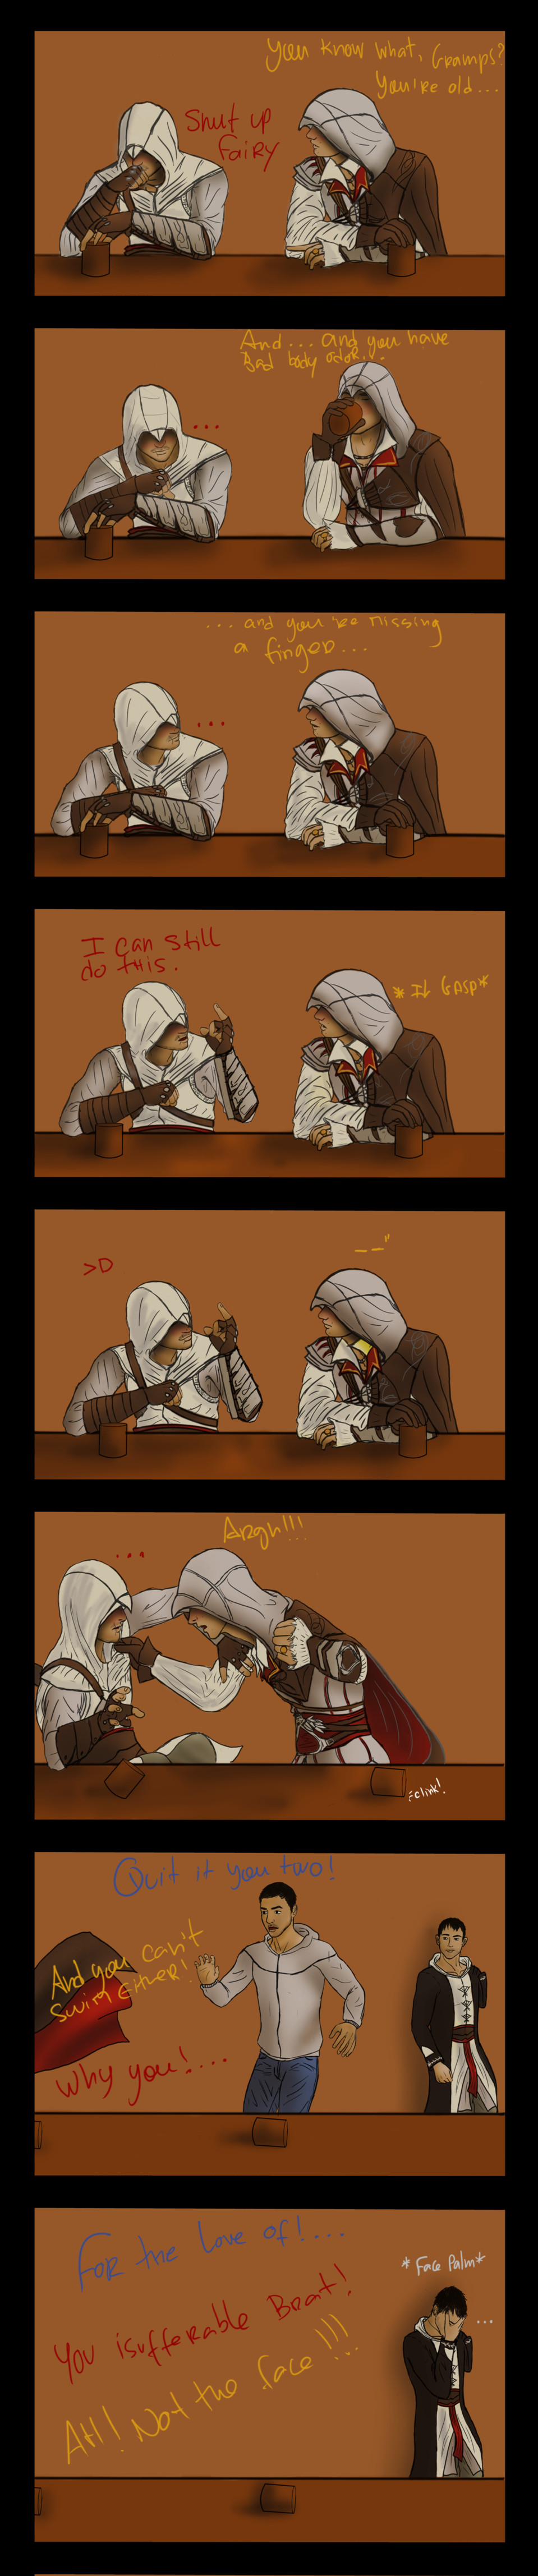 Drunk Time Paradox FTW by NevanAnxa